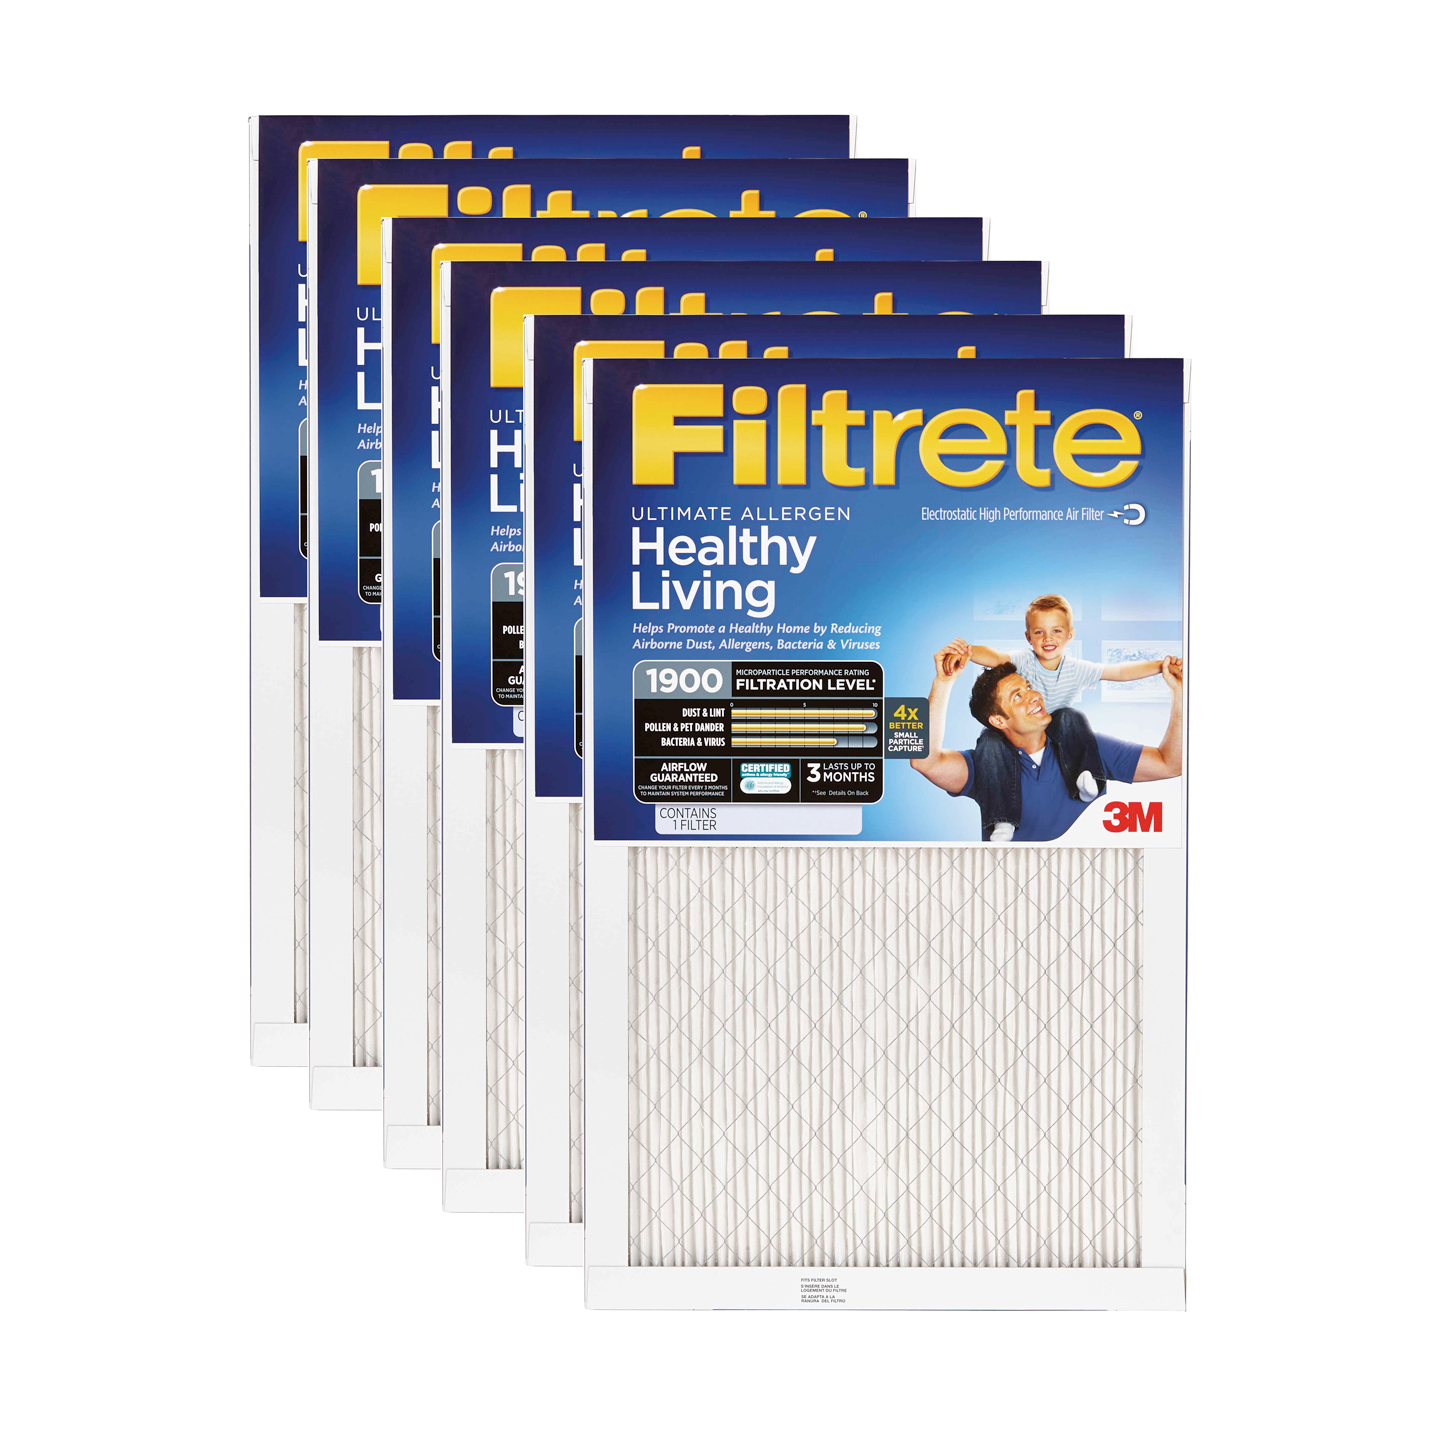 Filtrete 1900 Ultimate Allergen Healthy Living Filter - 12x12x1 (6-Pack) FILTRETE_ULTIMATE_BLUE_12x12x1_6_PACK